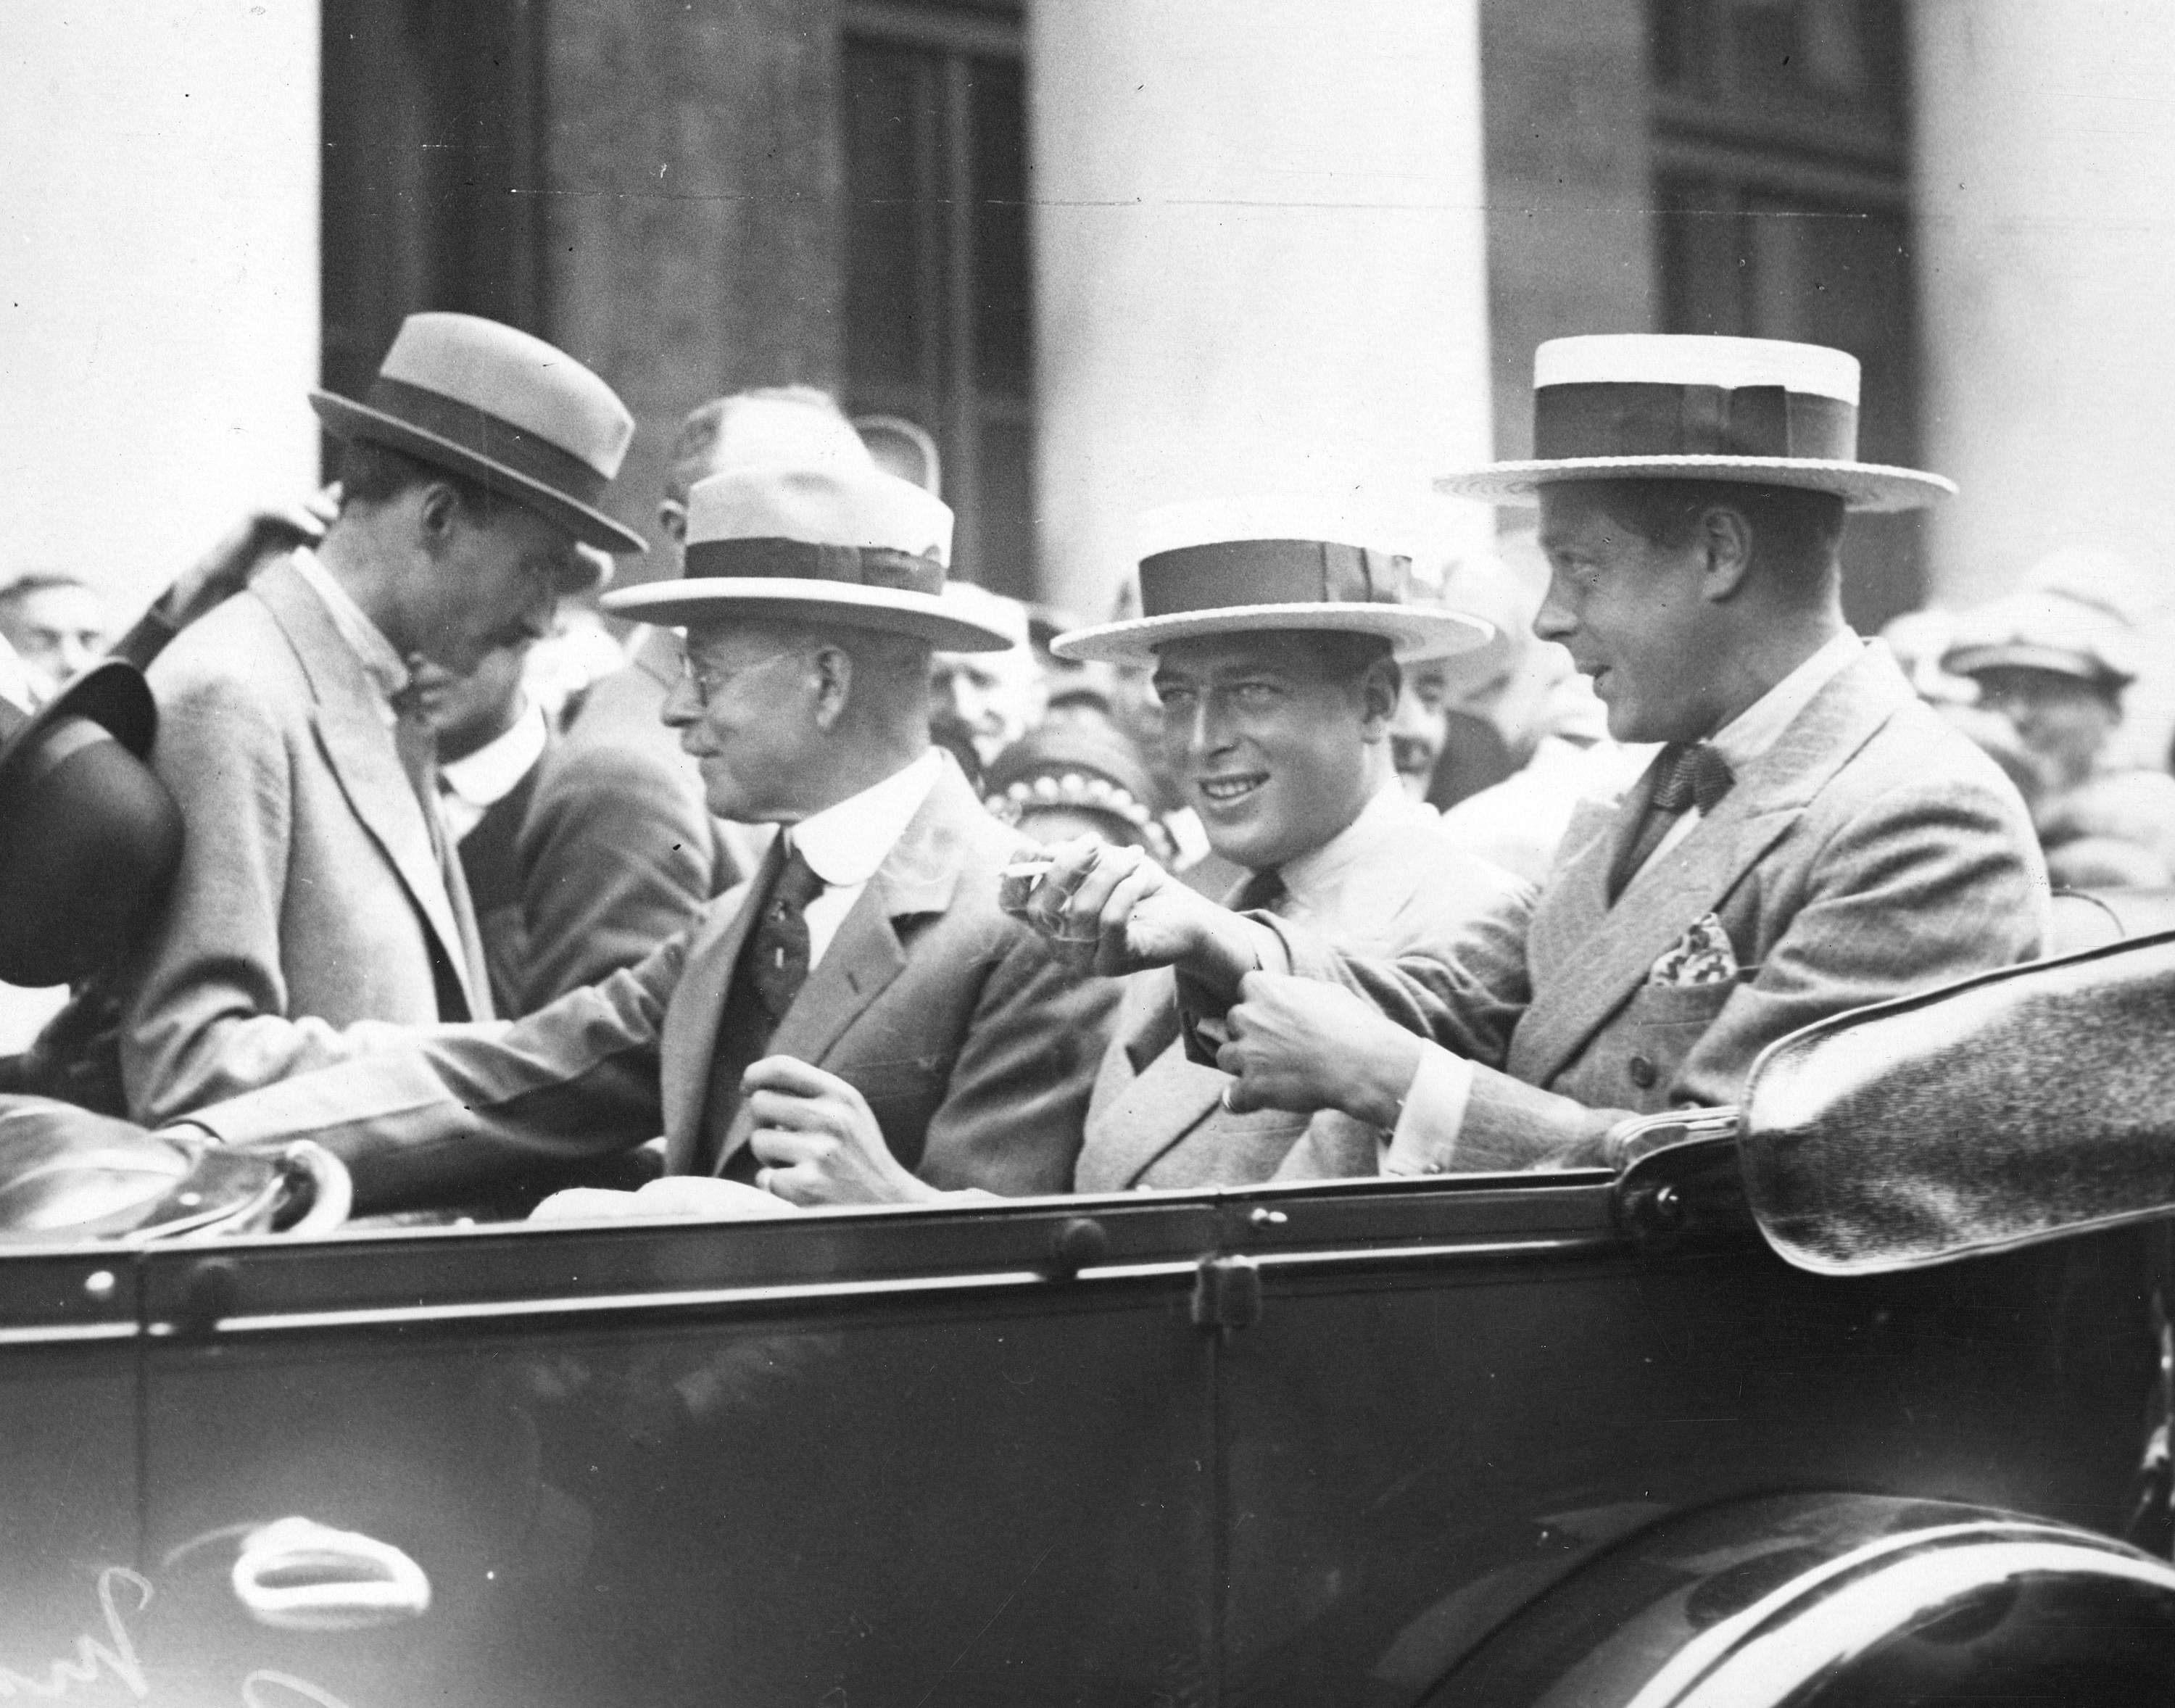 The Prince of Wales (right), youngest brother Prince George (centre) and His Worship L.D. Taylor (left) in a car in Vancouver in 1927 (Public domain)